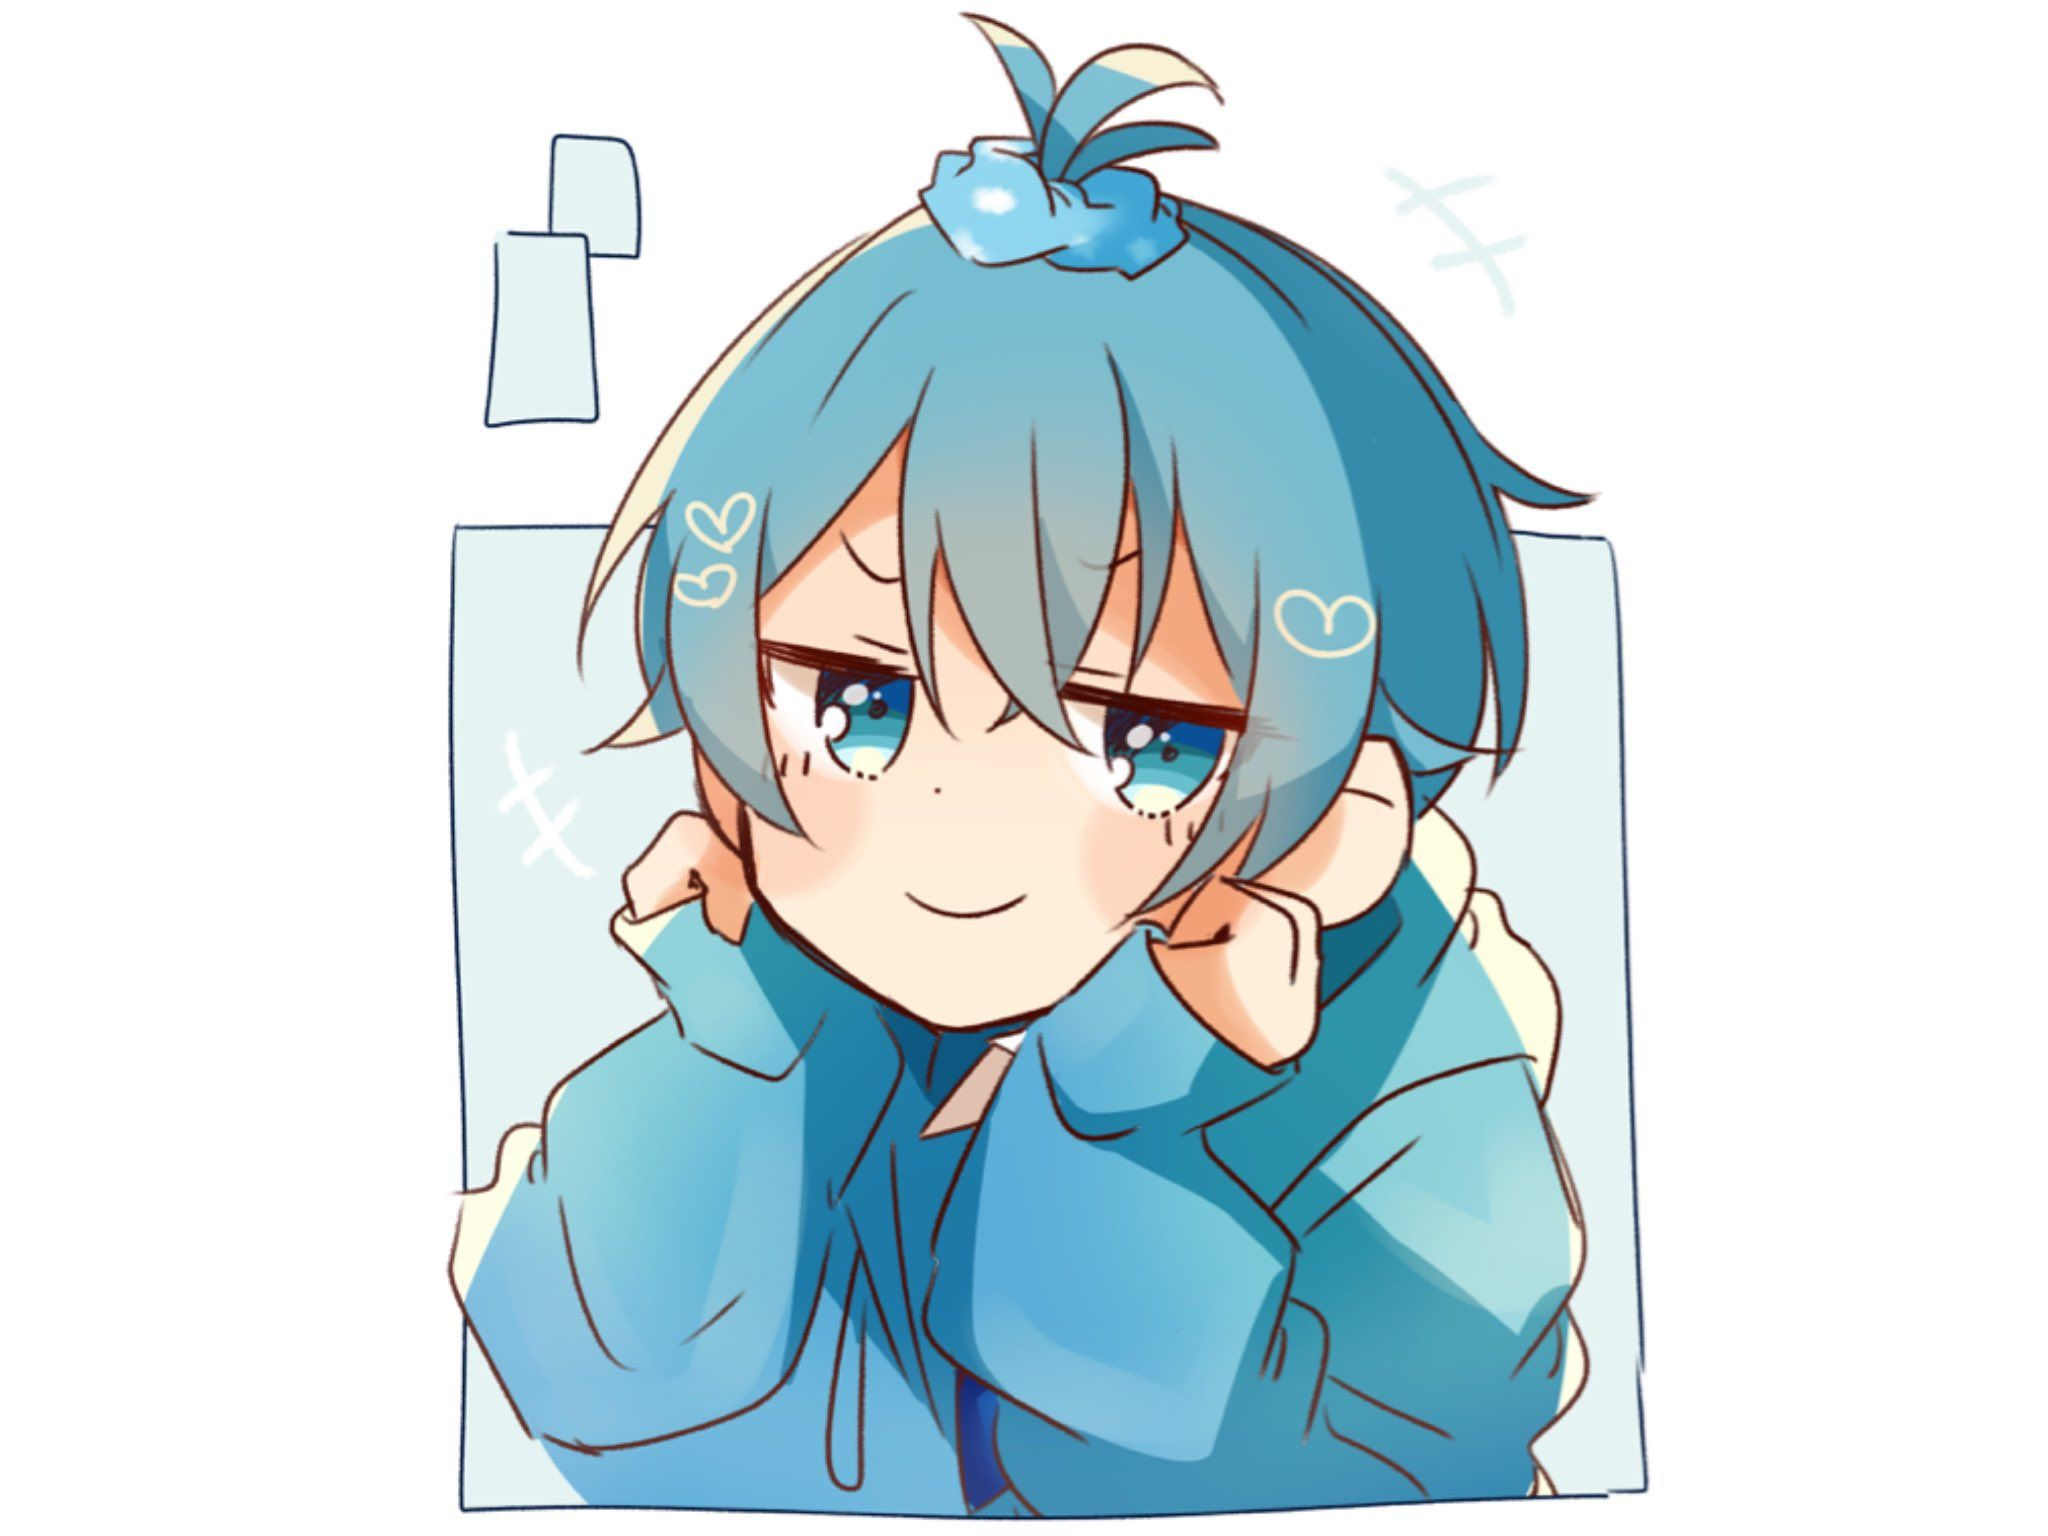 り を ん on Twitter in 2020 Cute anime boy, Blue anime